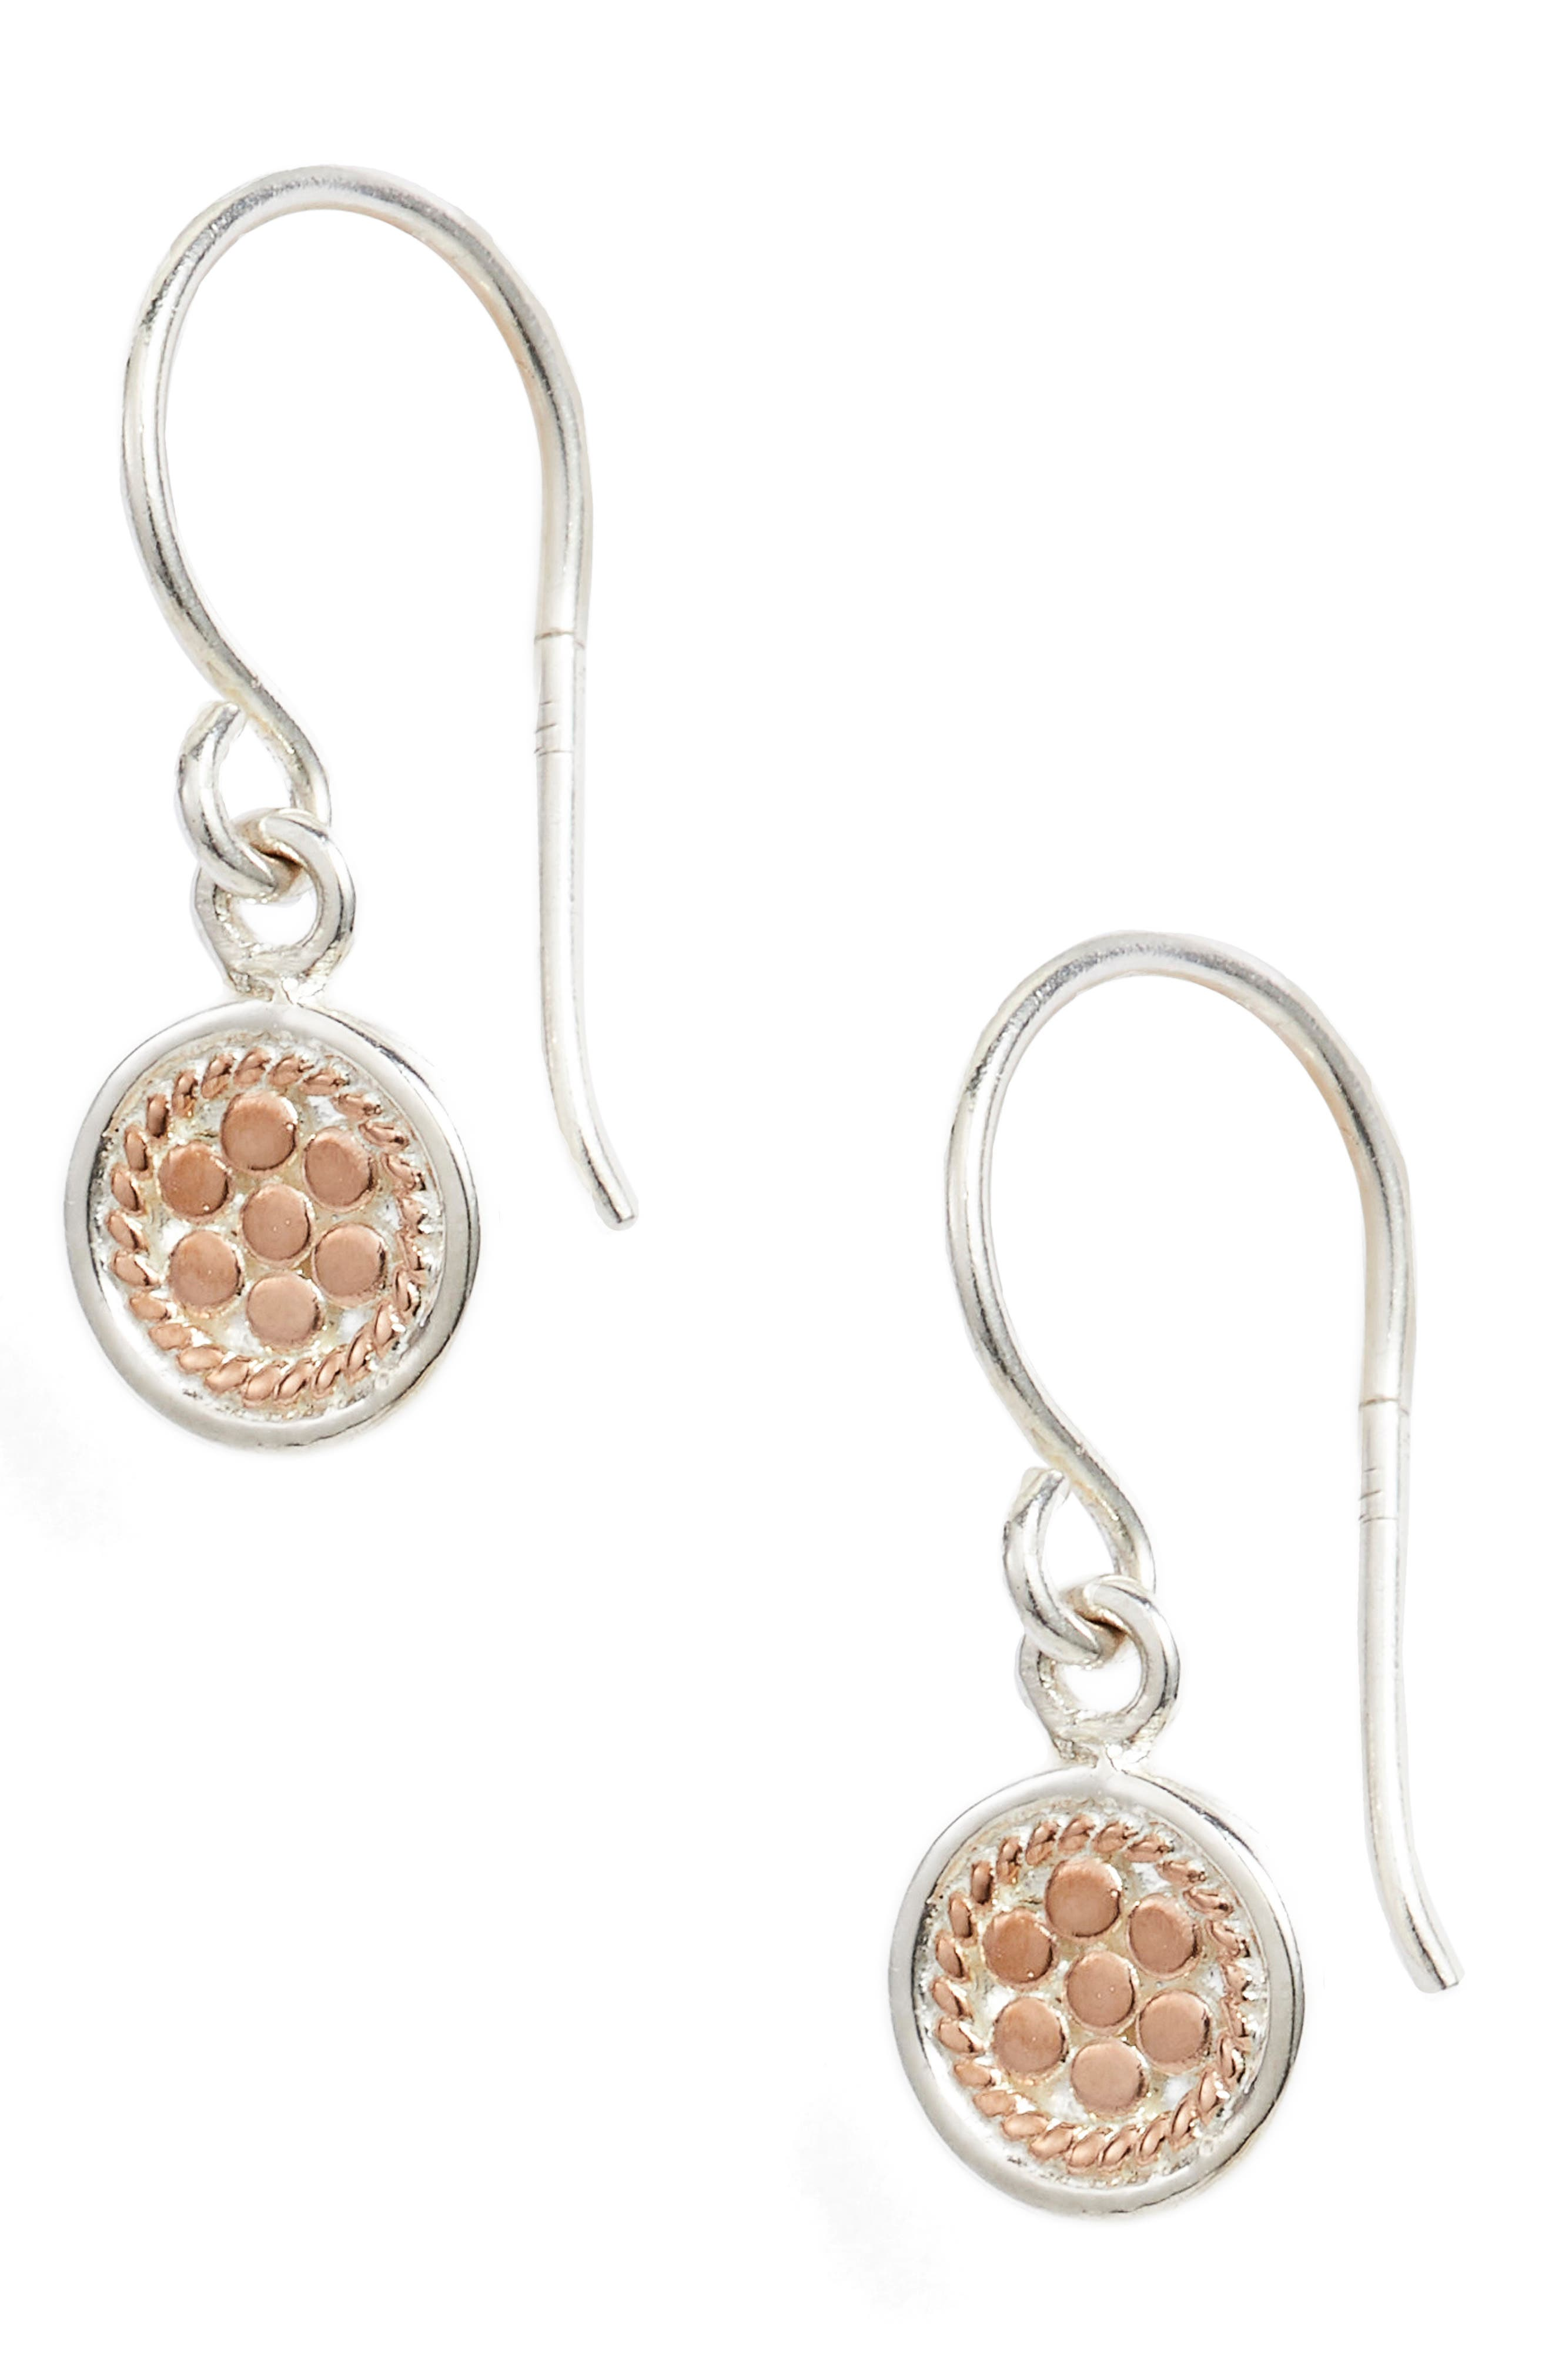 Petite Disc Drop Earrings,                         Main,                         color, ROSE GOLD/ SILVER